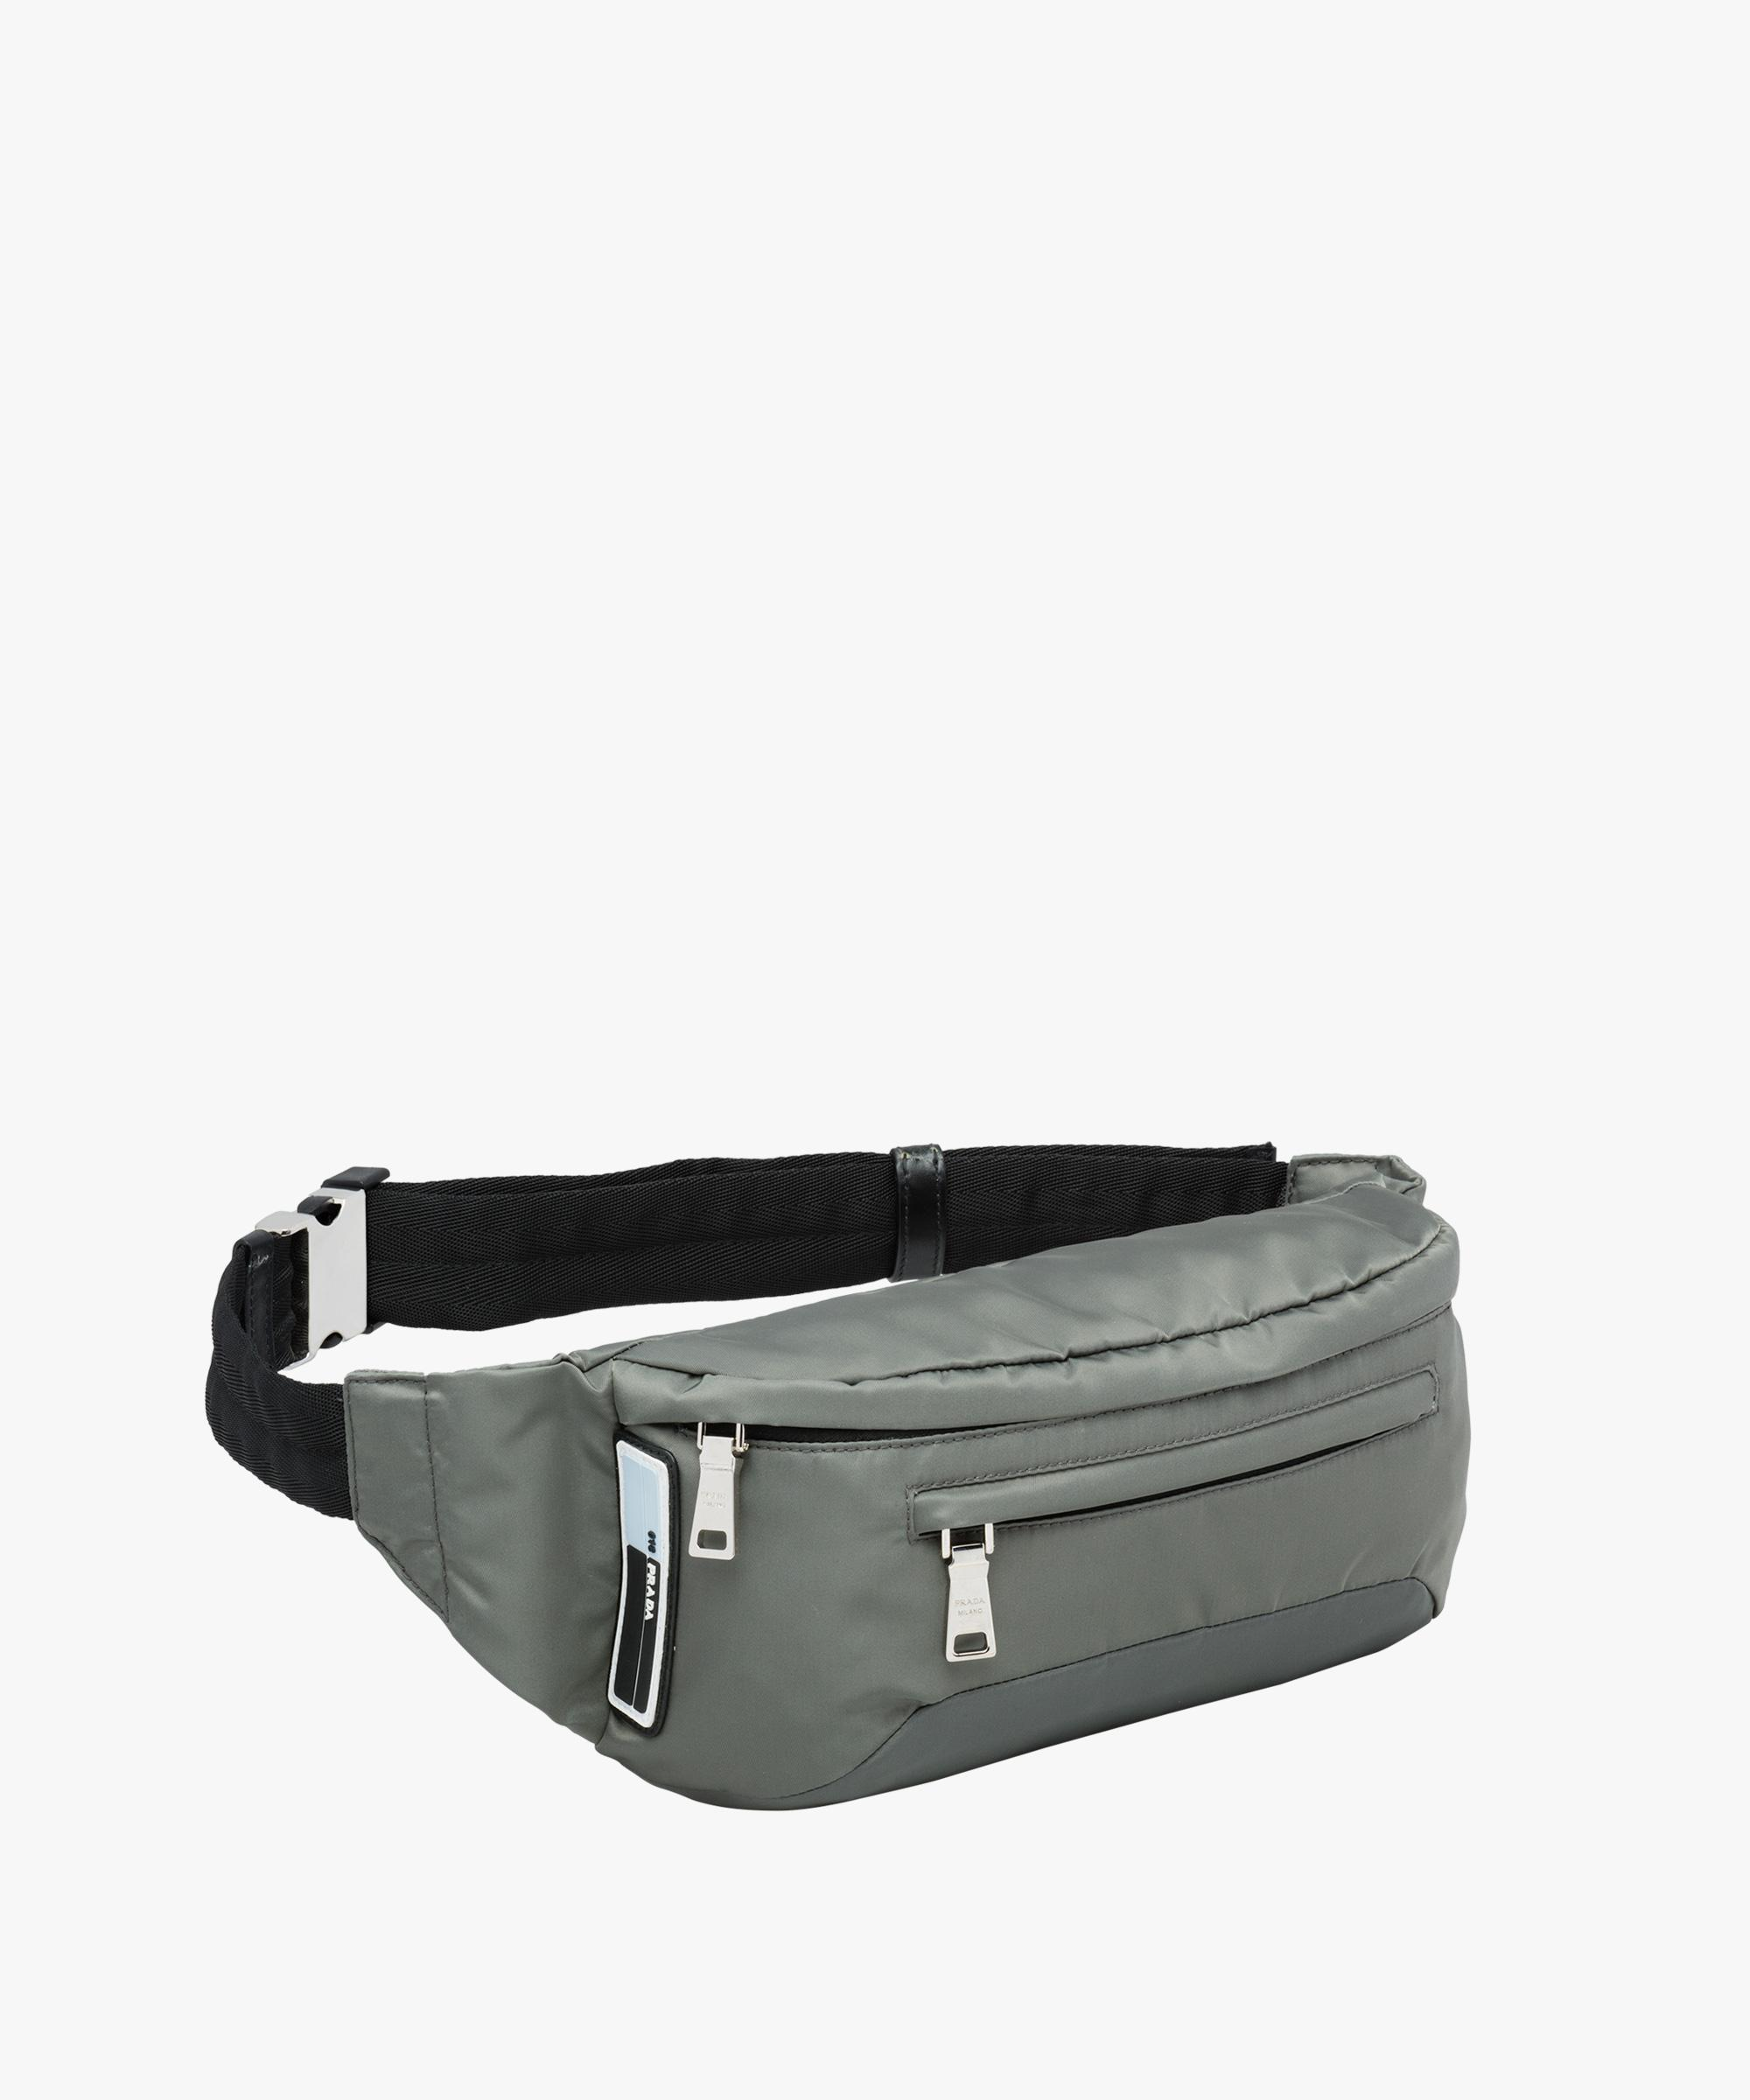 Lyst - Prada Technical Fabric Belt Bag in Gray for Men b726a533f7